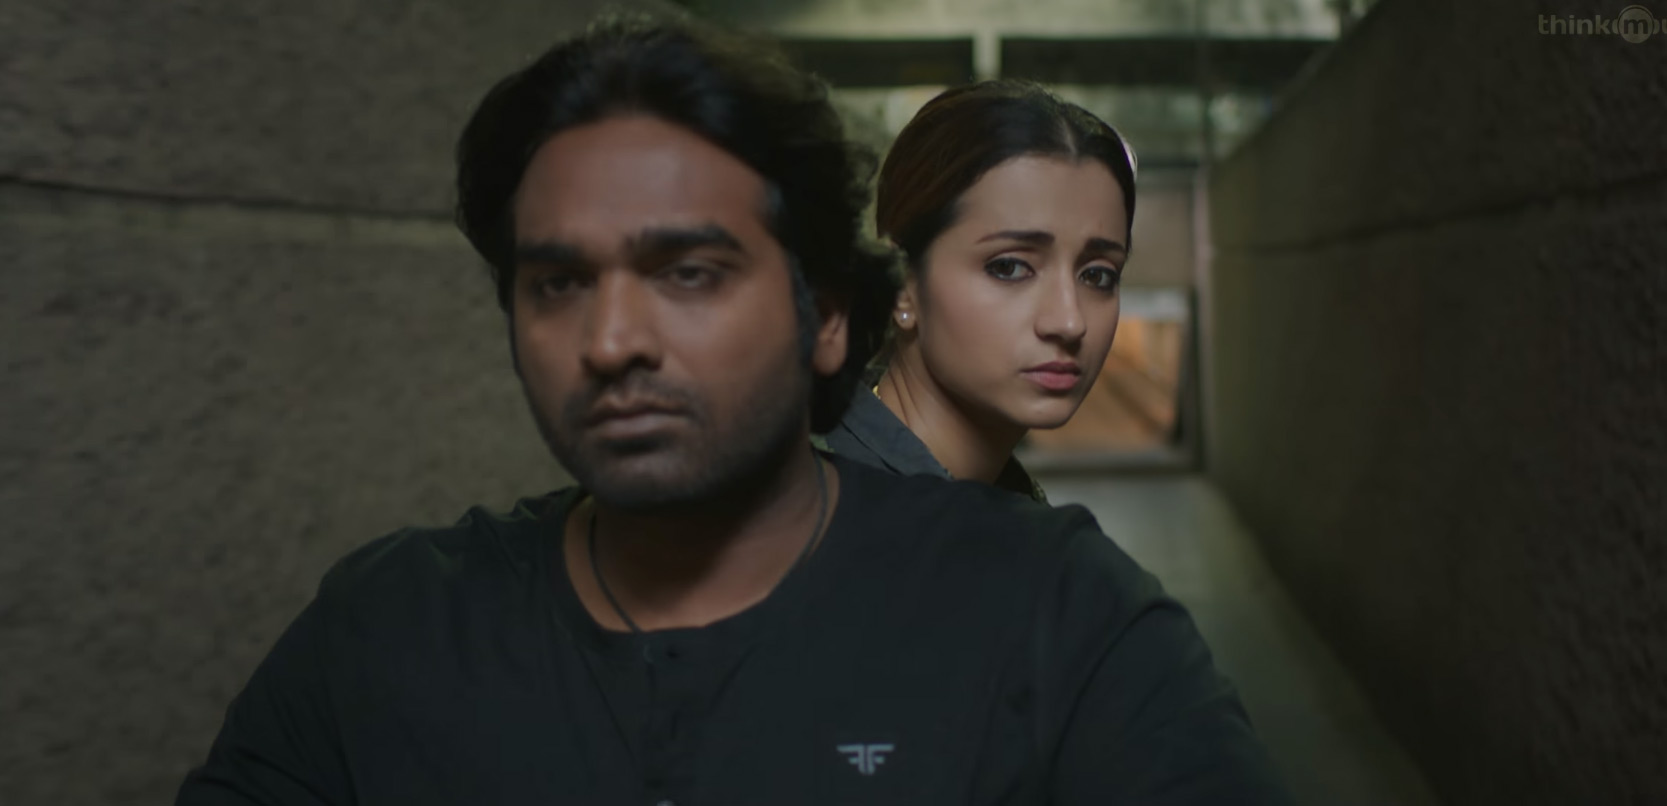 Vijay Sethupathi and Trisha in 96 teaser